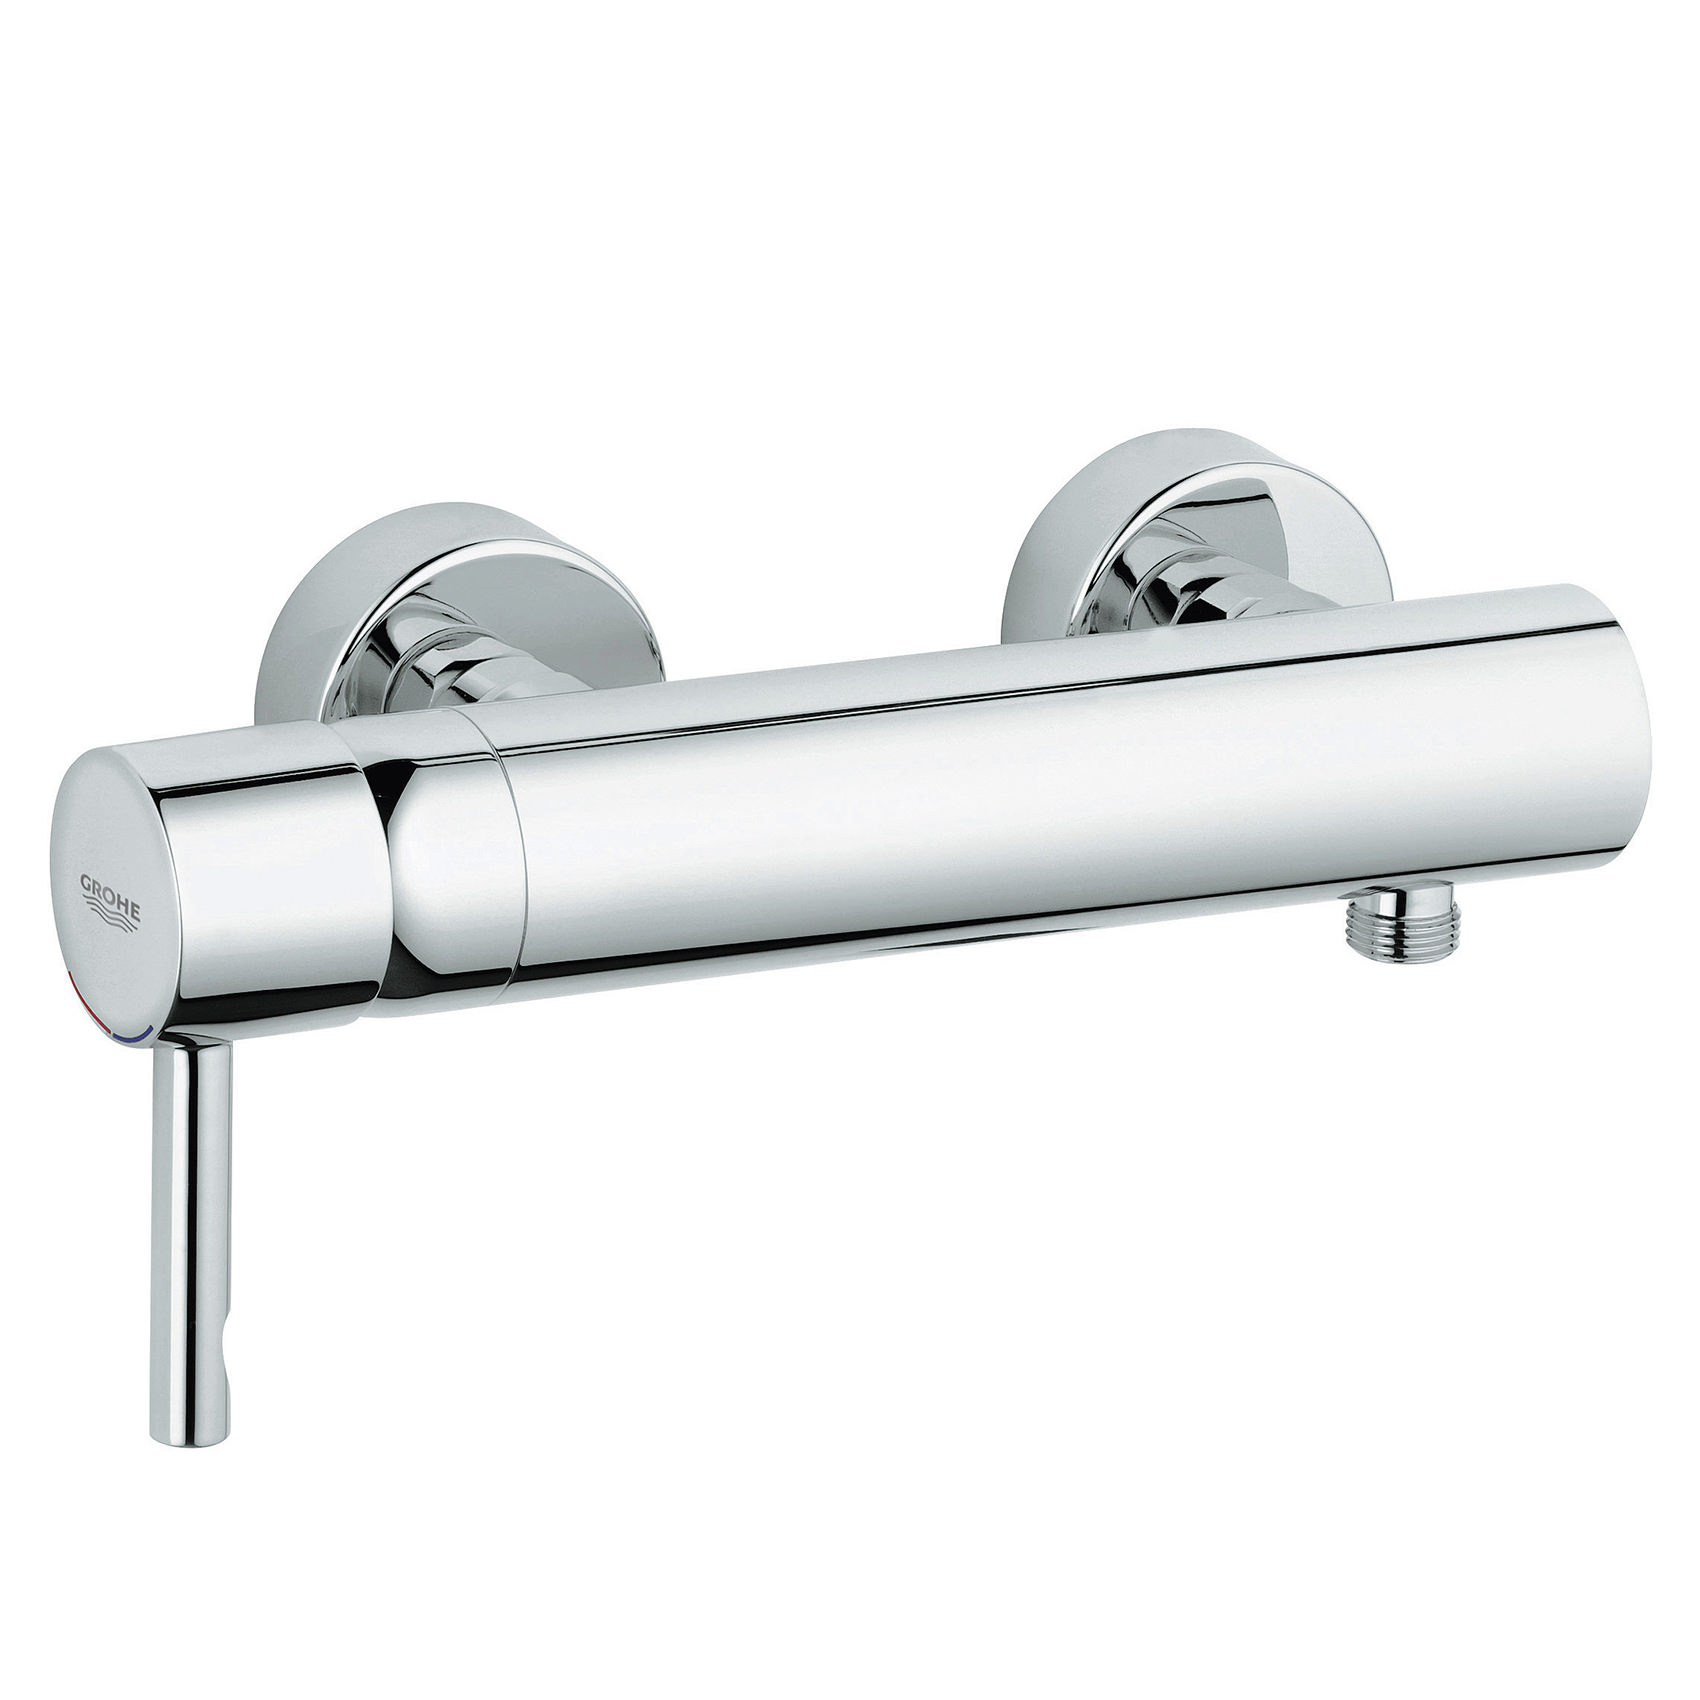 Grohe Essence Exposed Single Lever Shower Mixer Valve